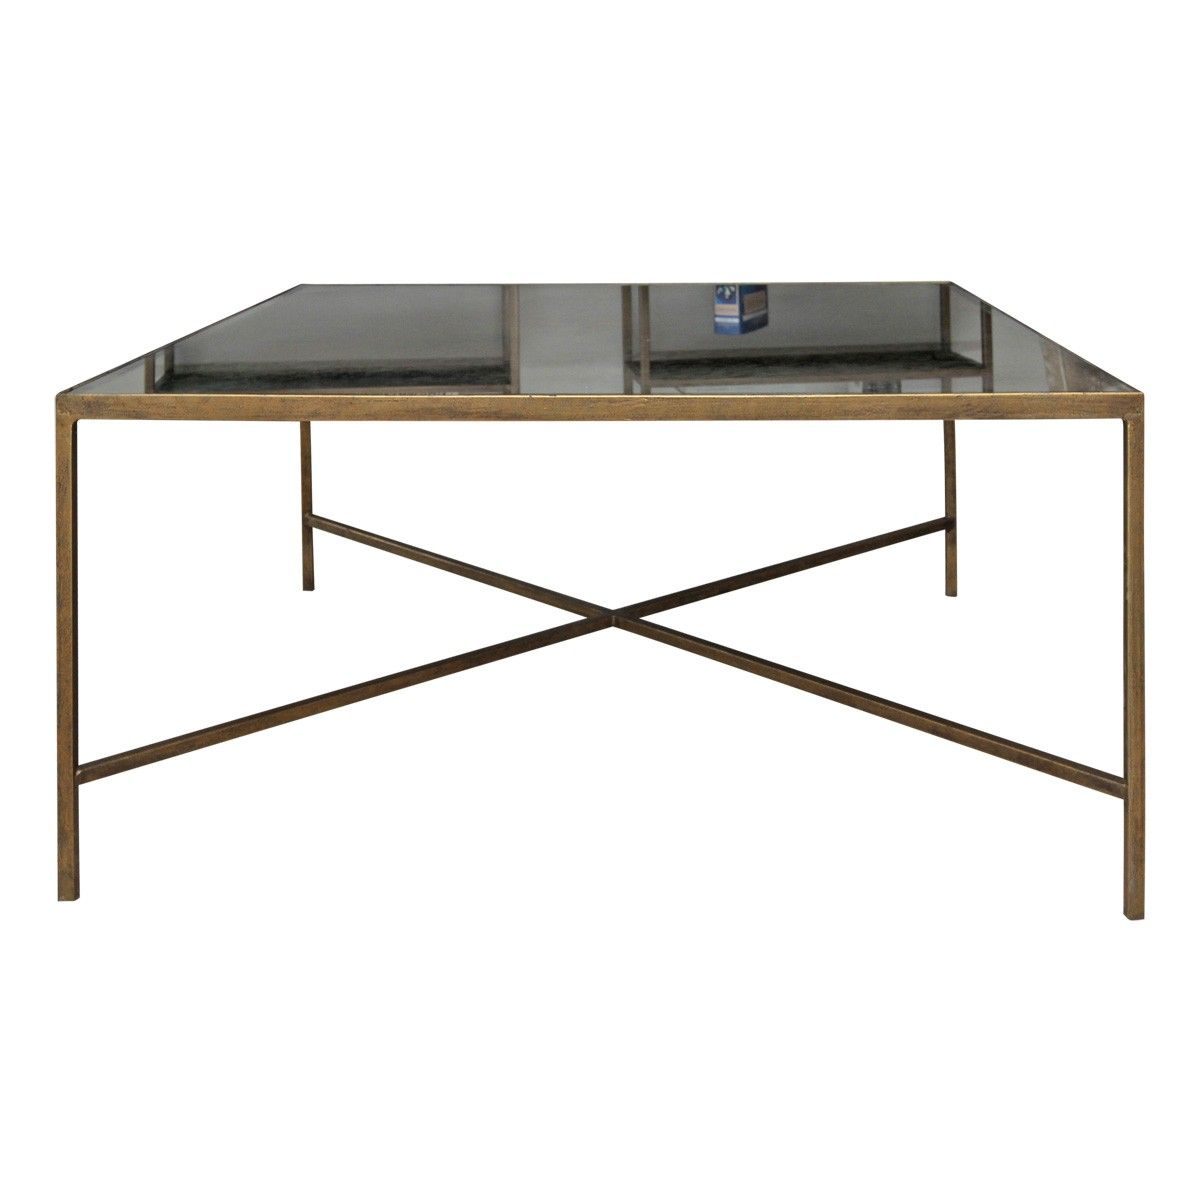 Mirrored Square Coffee Table Coffee Table Square Engineered Wood Floors Interior